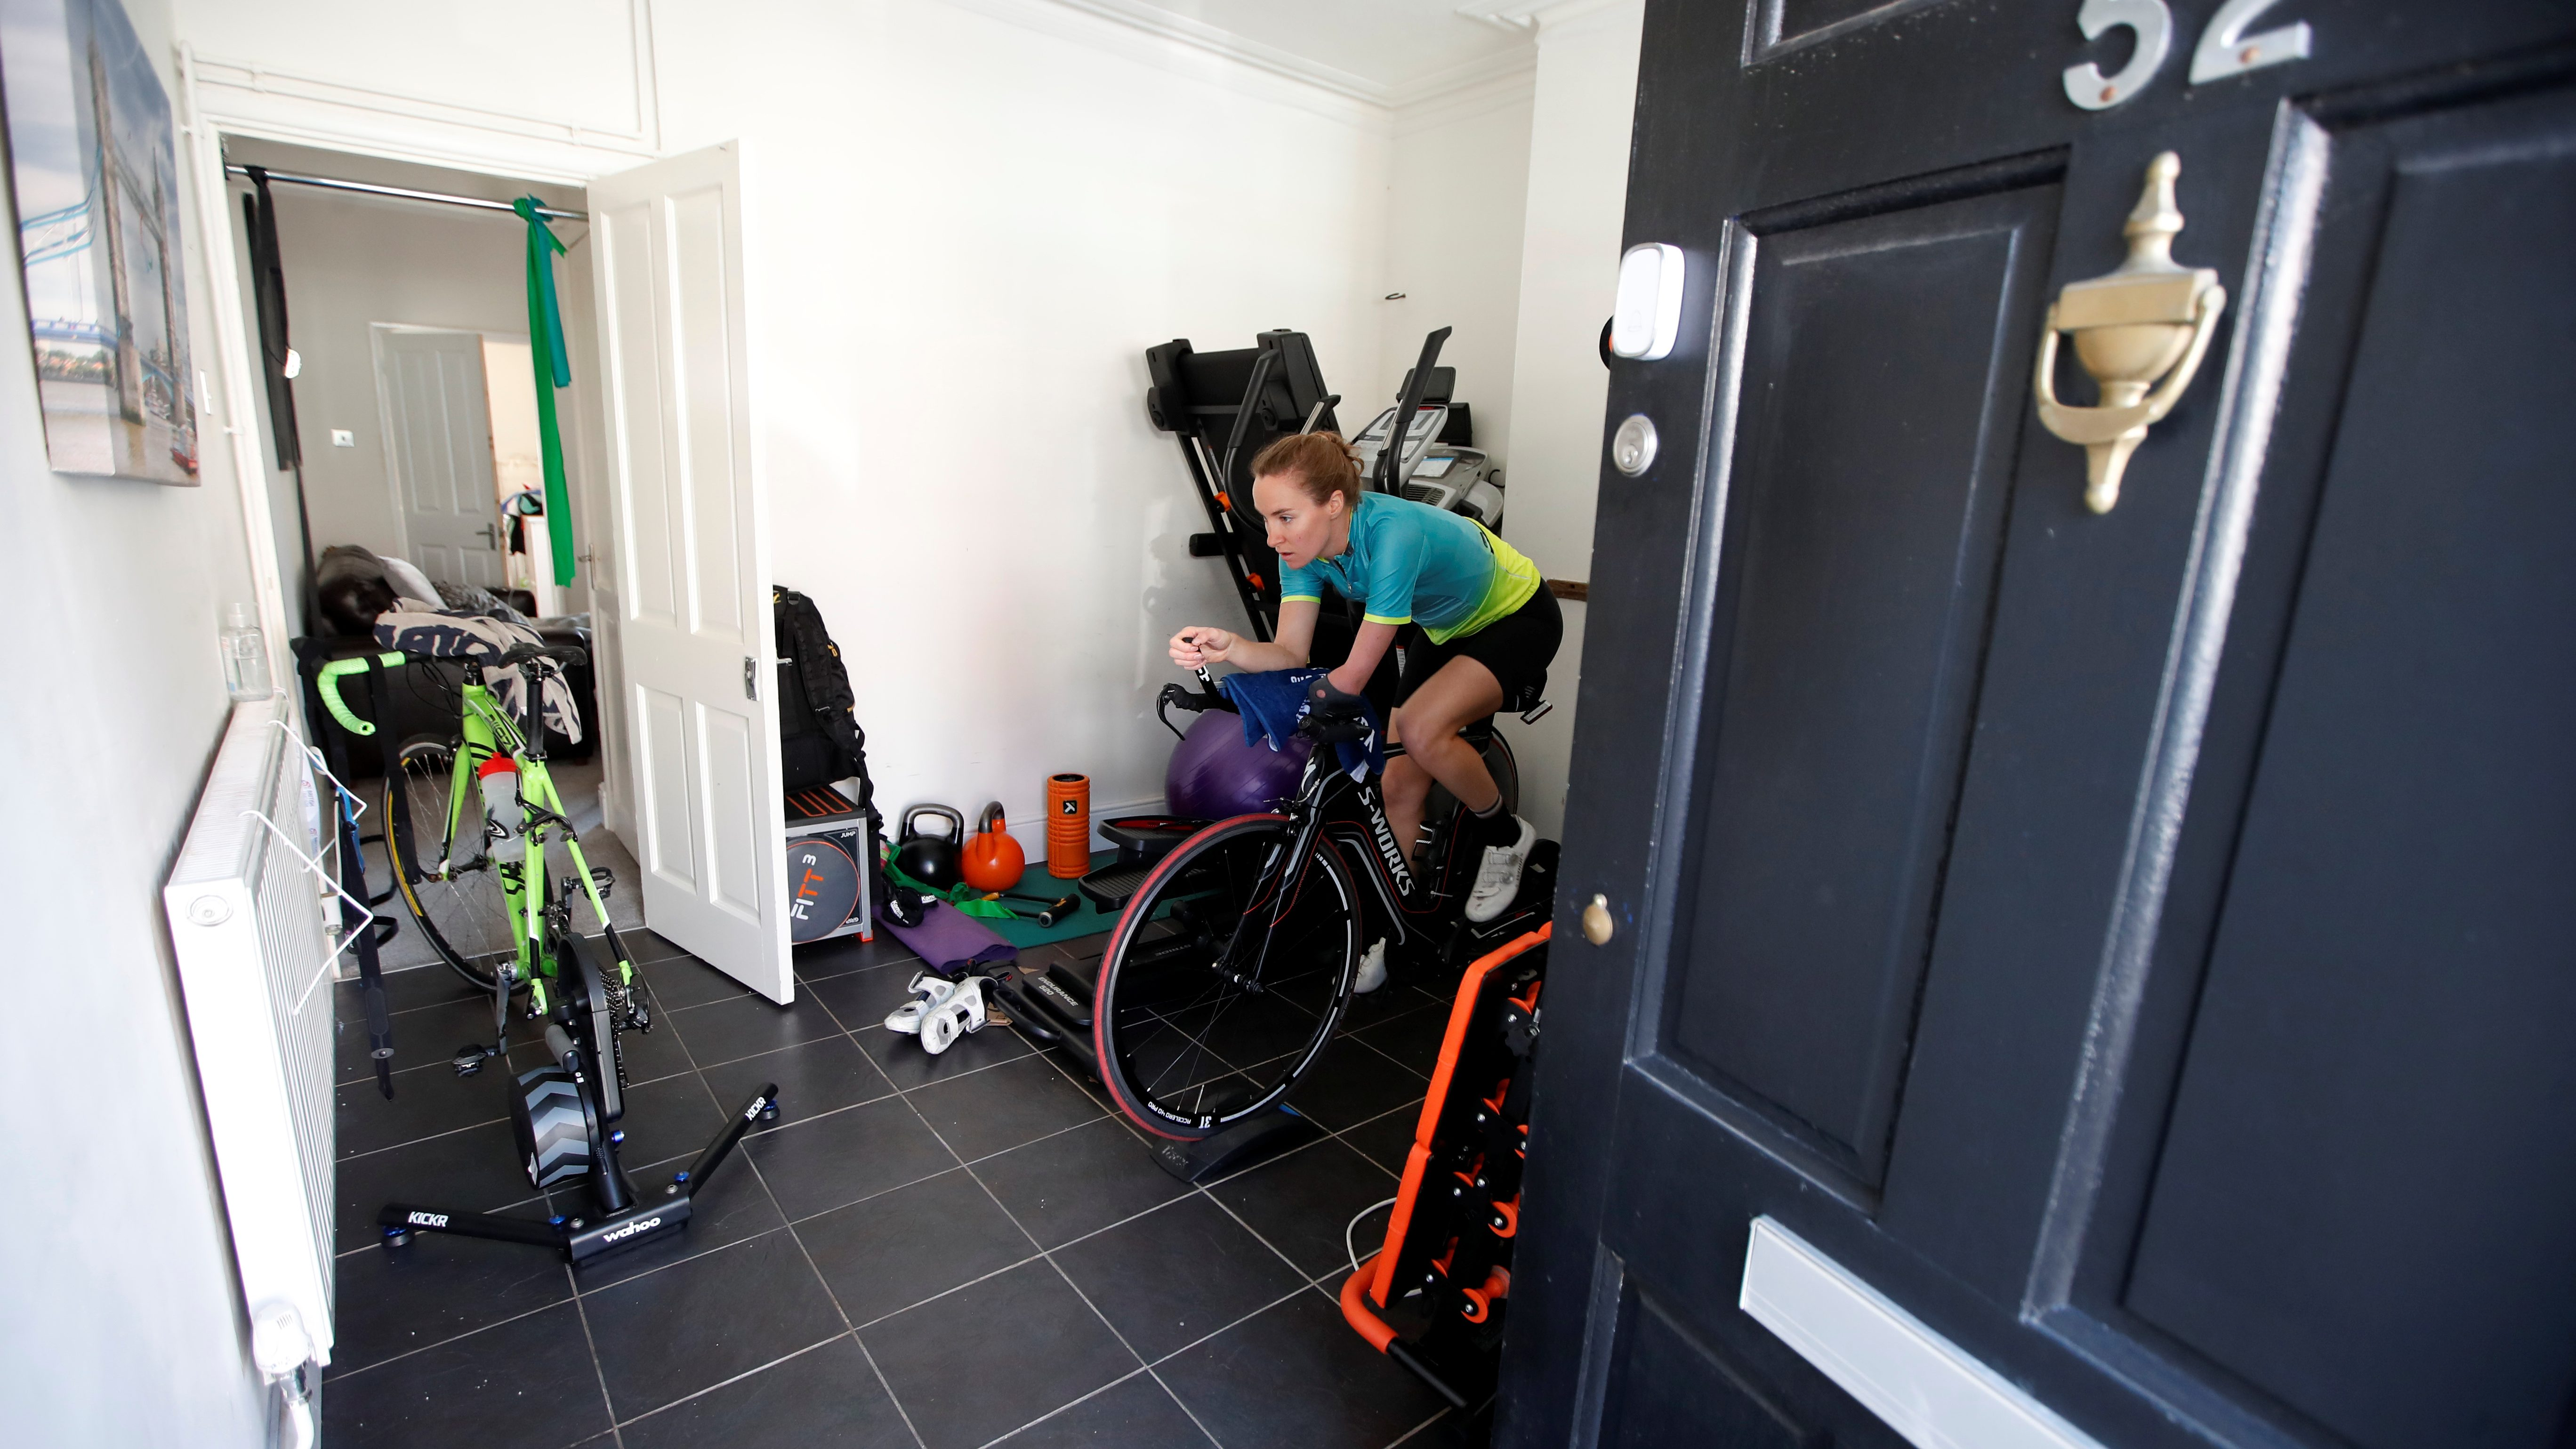 Team GB paratriathlete Claire Cashmore on a stationary bike during a training session following the outbreak of the coronavirus disease.